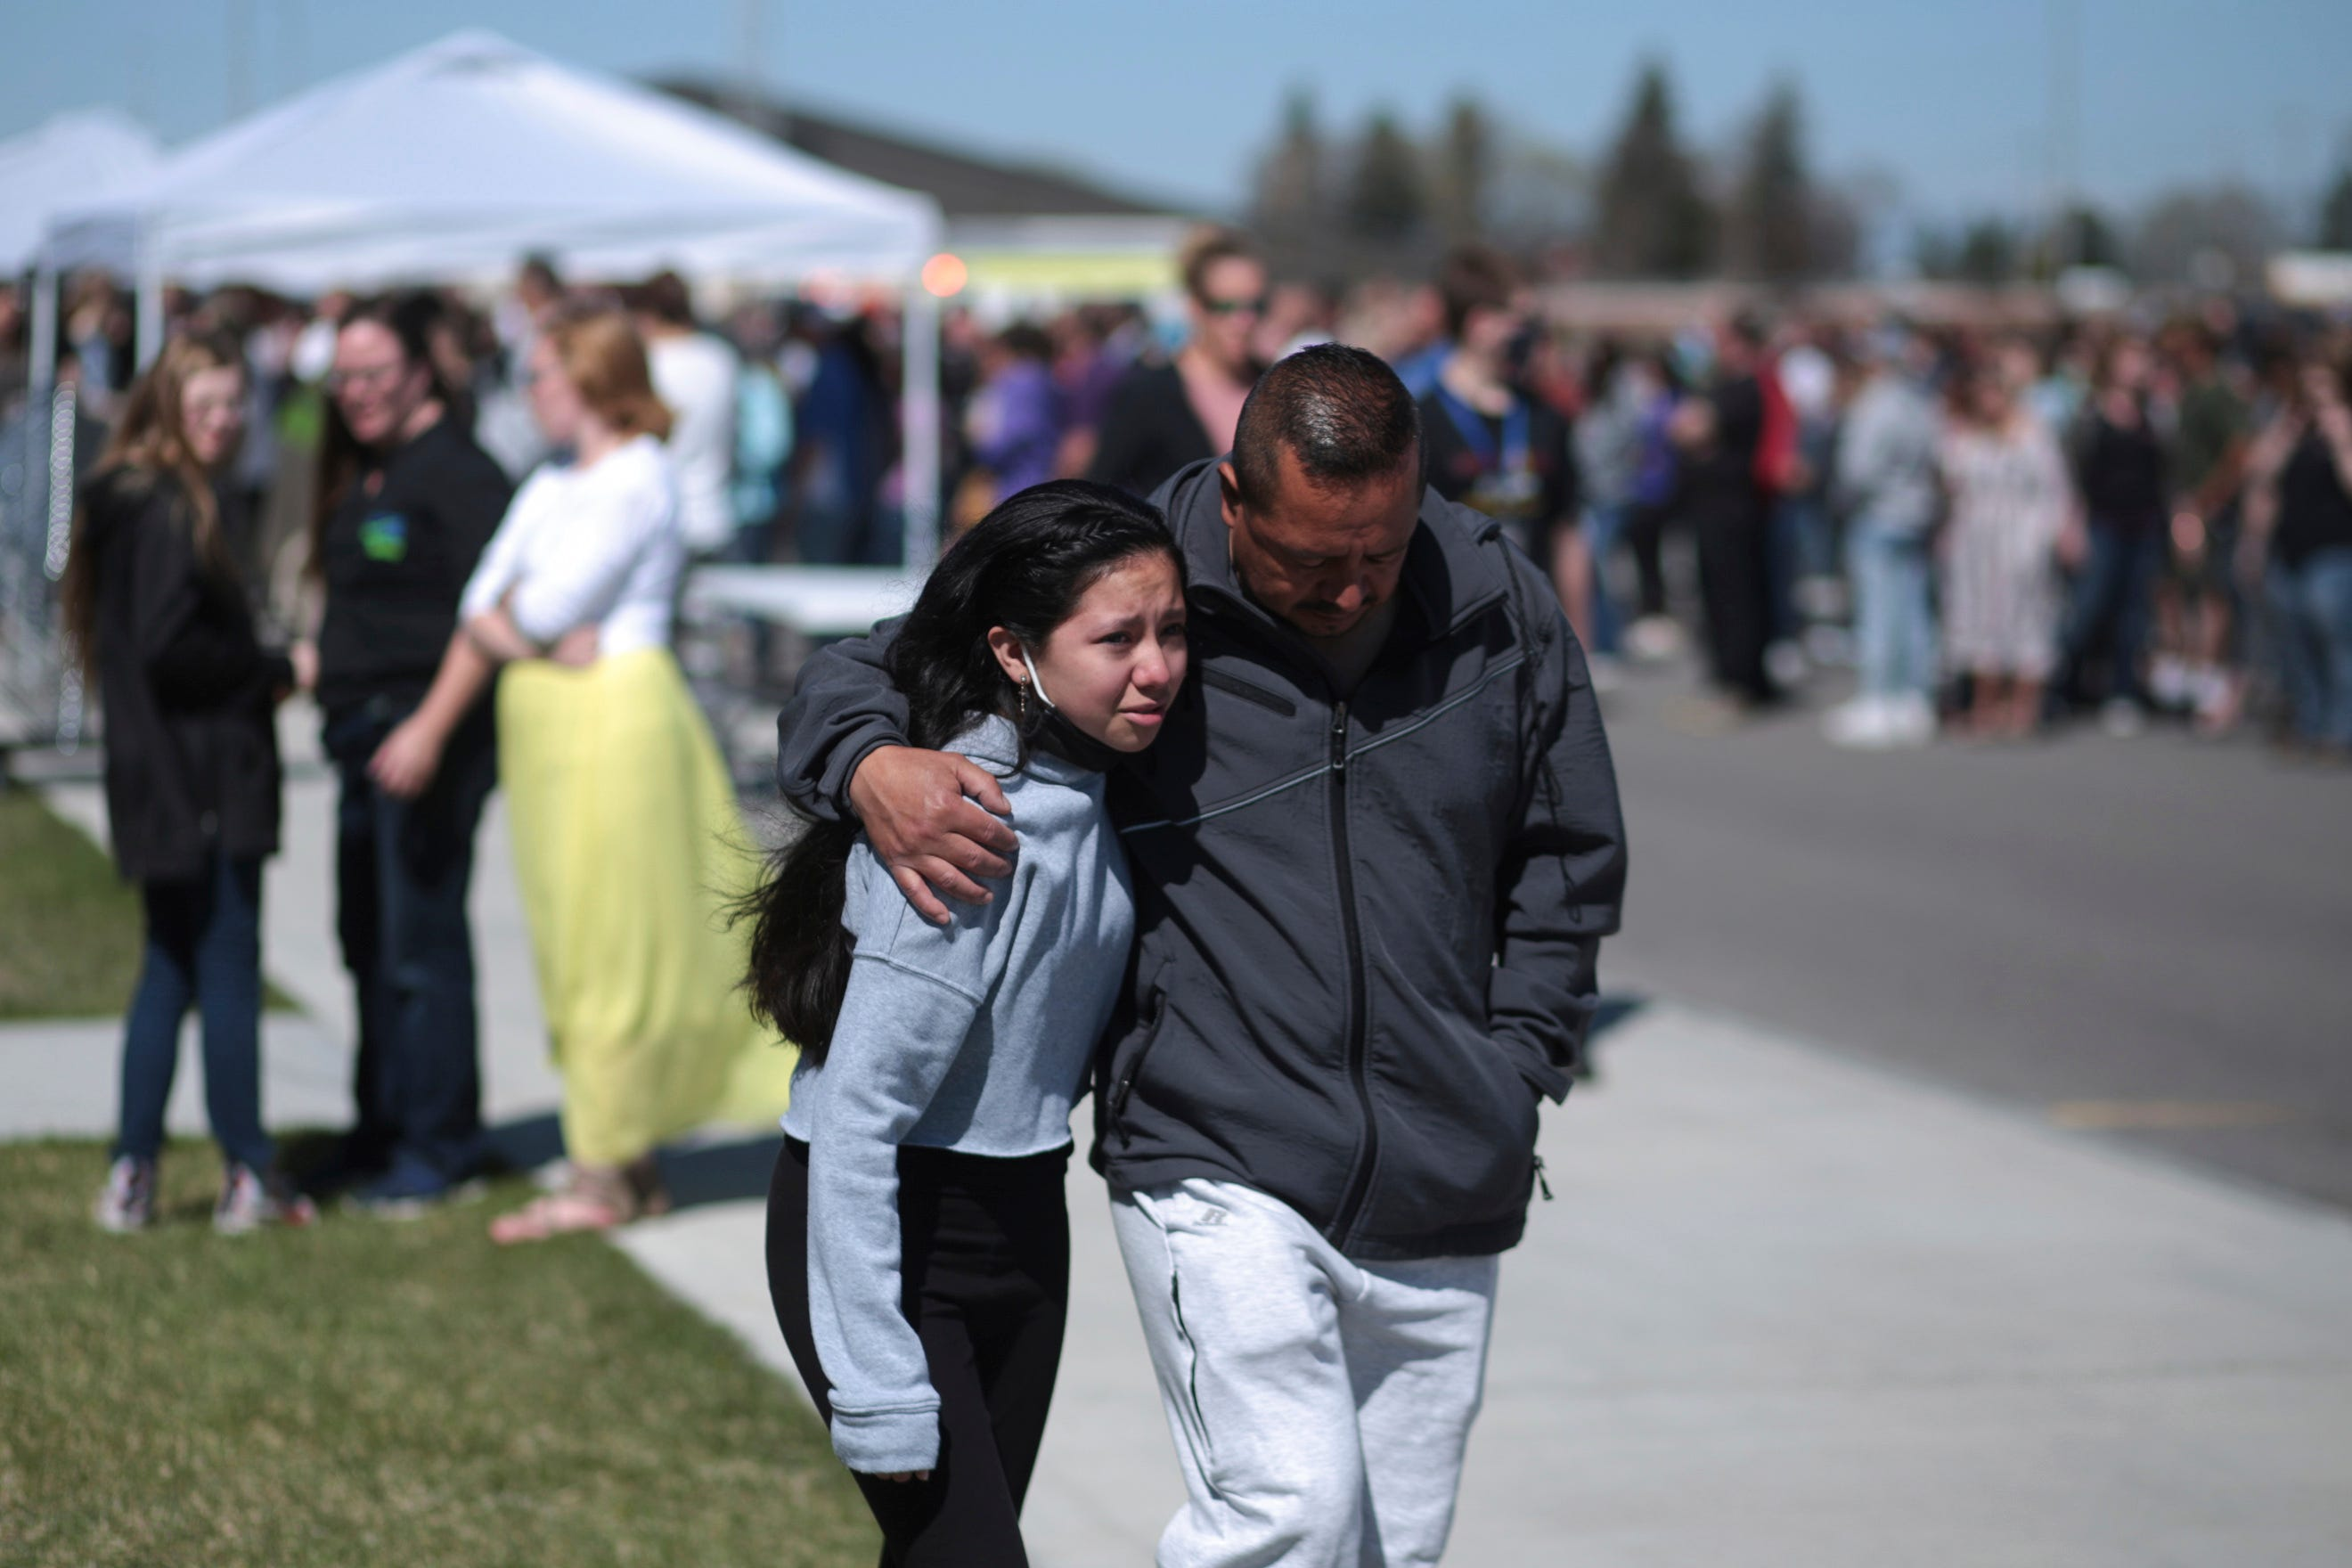 3 injured in Idaho middle school shooting; suspect captured 1